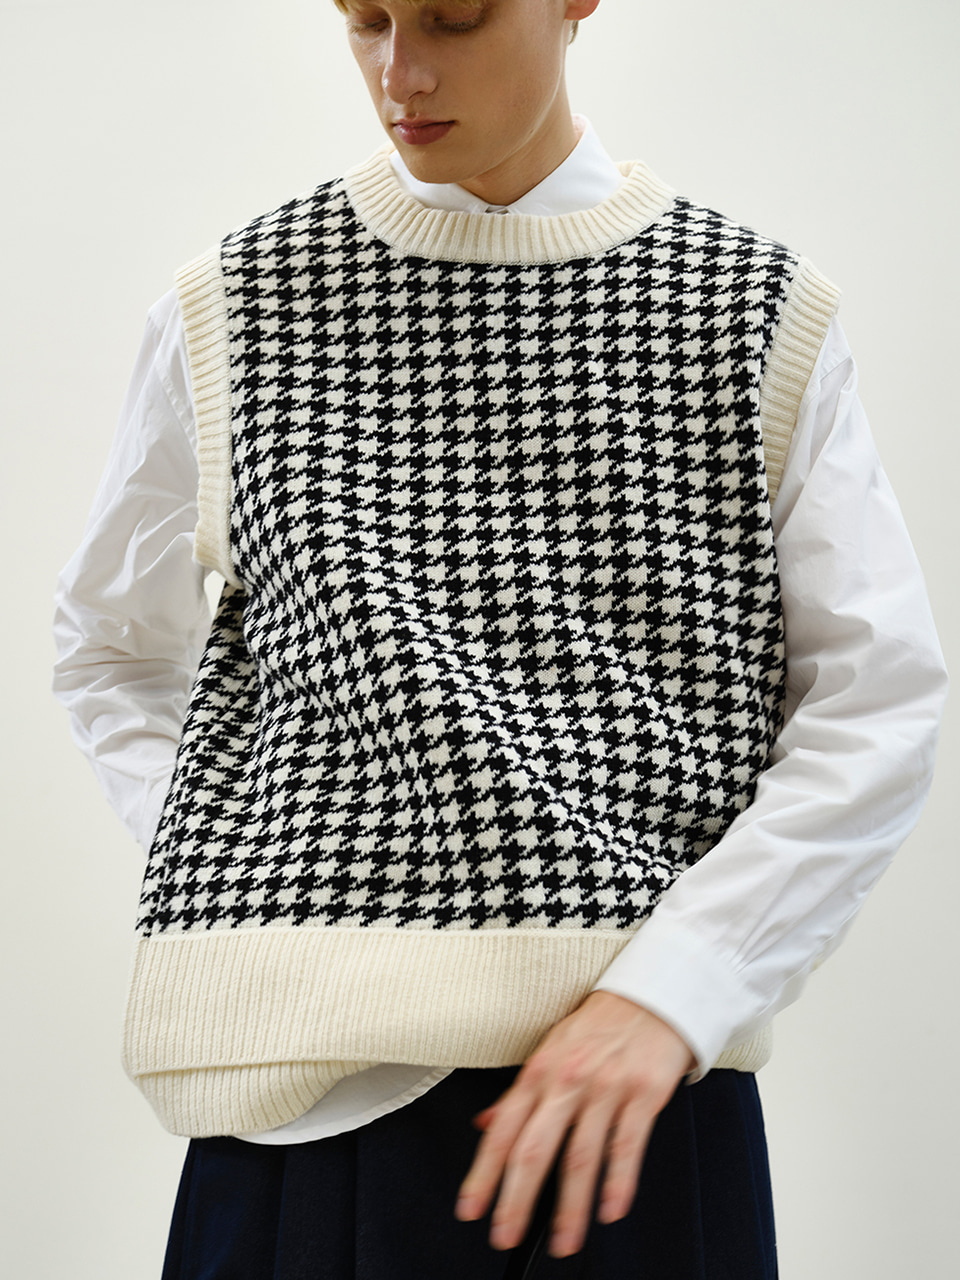 [FW20] LAYERED RIB KNIT VEST(Off White) IEY [FW20] LAYERED RIB KNIT VEST(Off White)